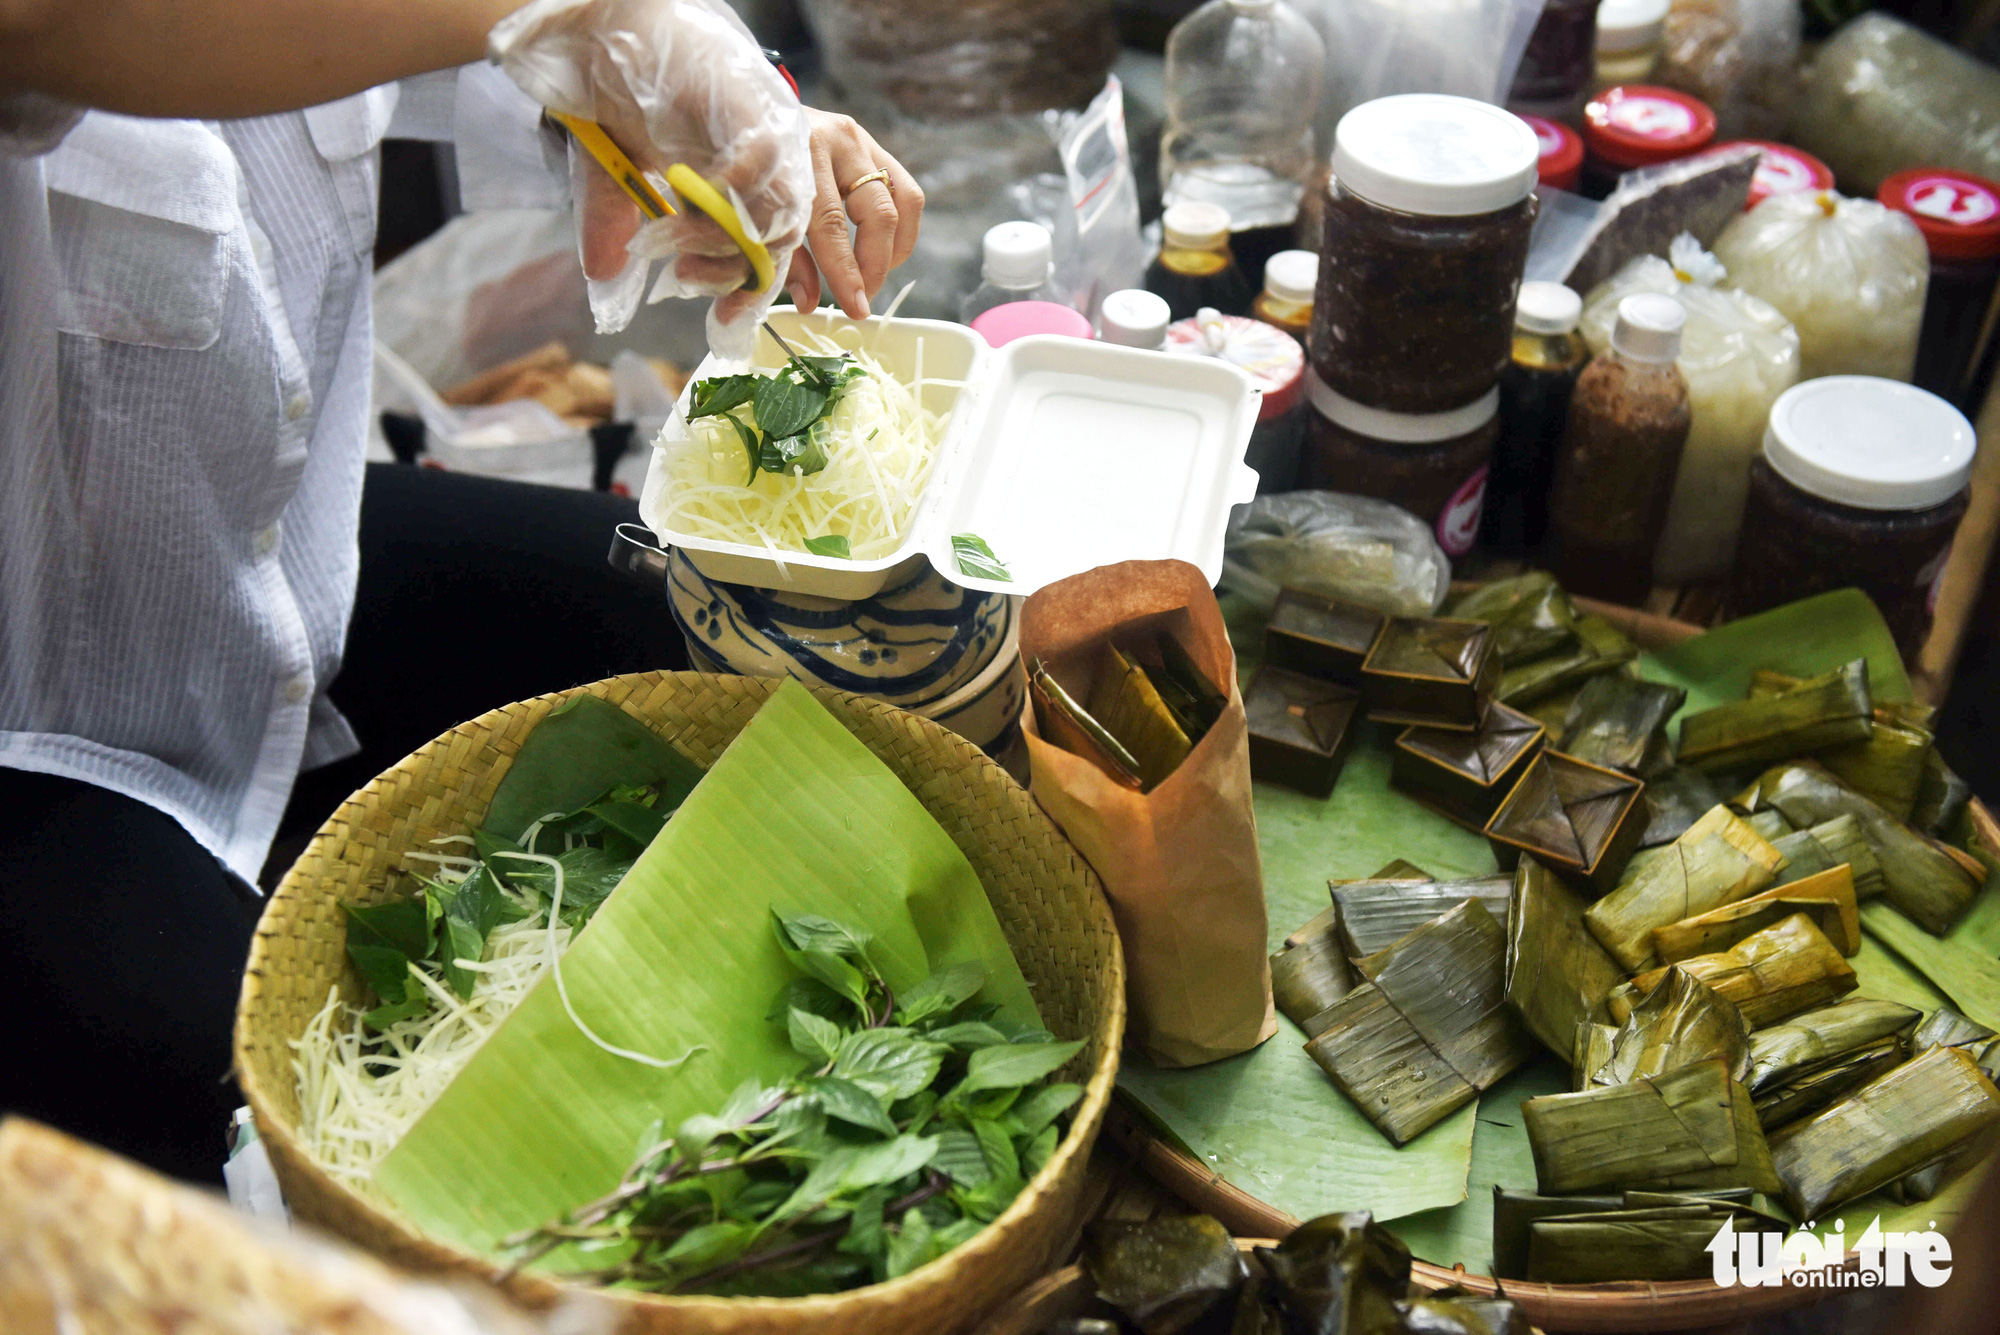 A seller prepares 'banh loc' (tapioca dumplings with pork belly and prawn fillings) at a 'countryside market' at No. 7 Nguyen Thi Minh Khai Street, District 1, Ho Chi Minh City, Vietnam, May 24, 2020. Photo: Duyen Phan / Tuoi Tre